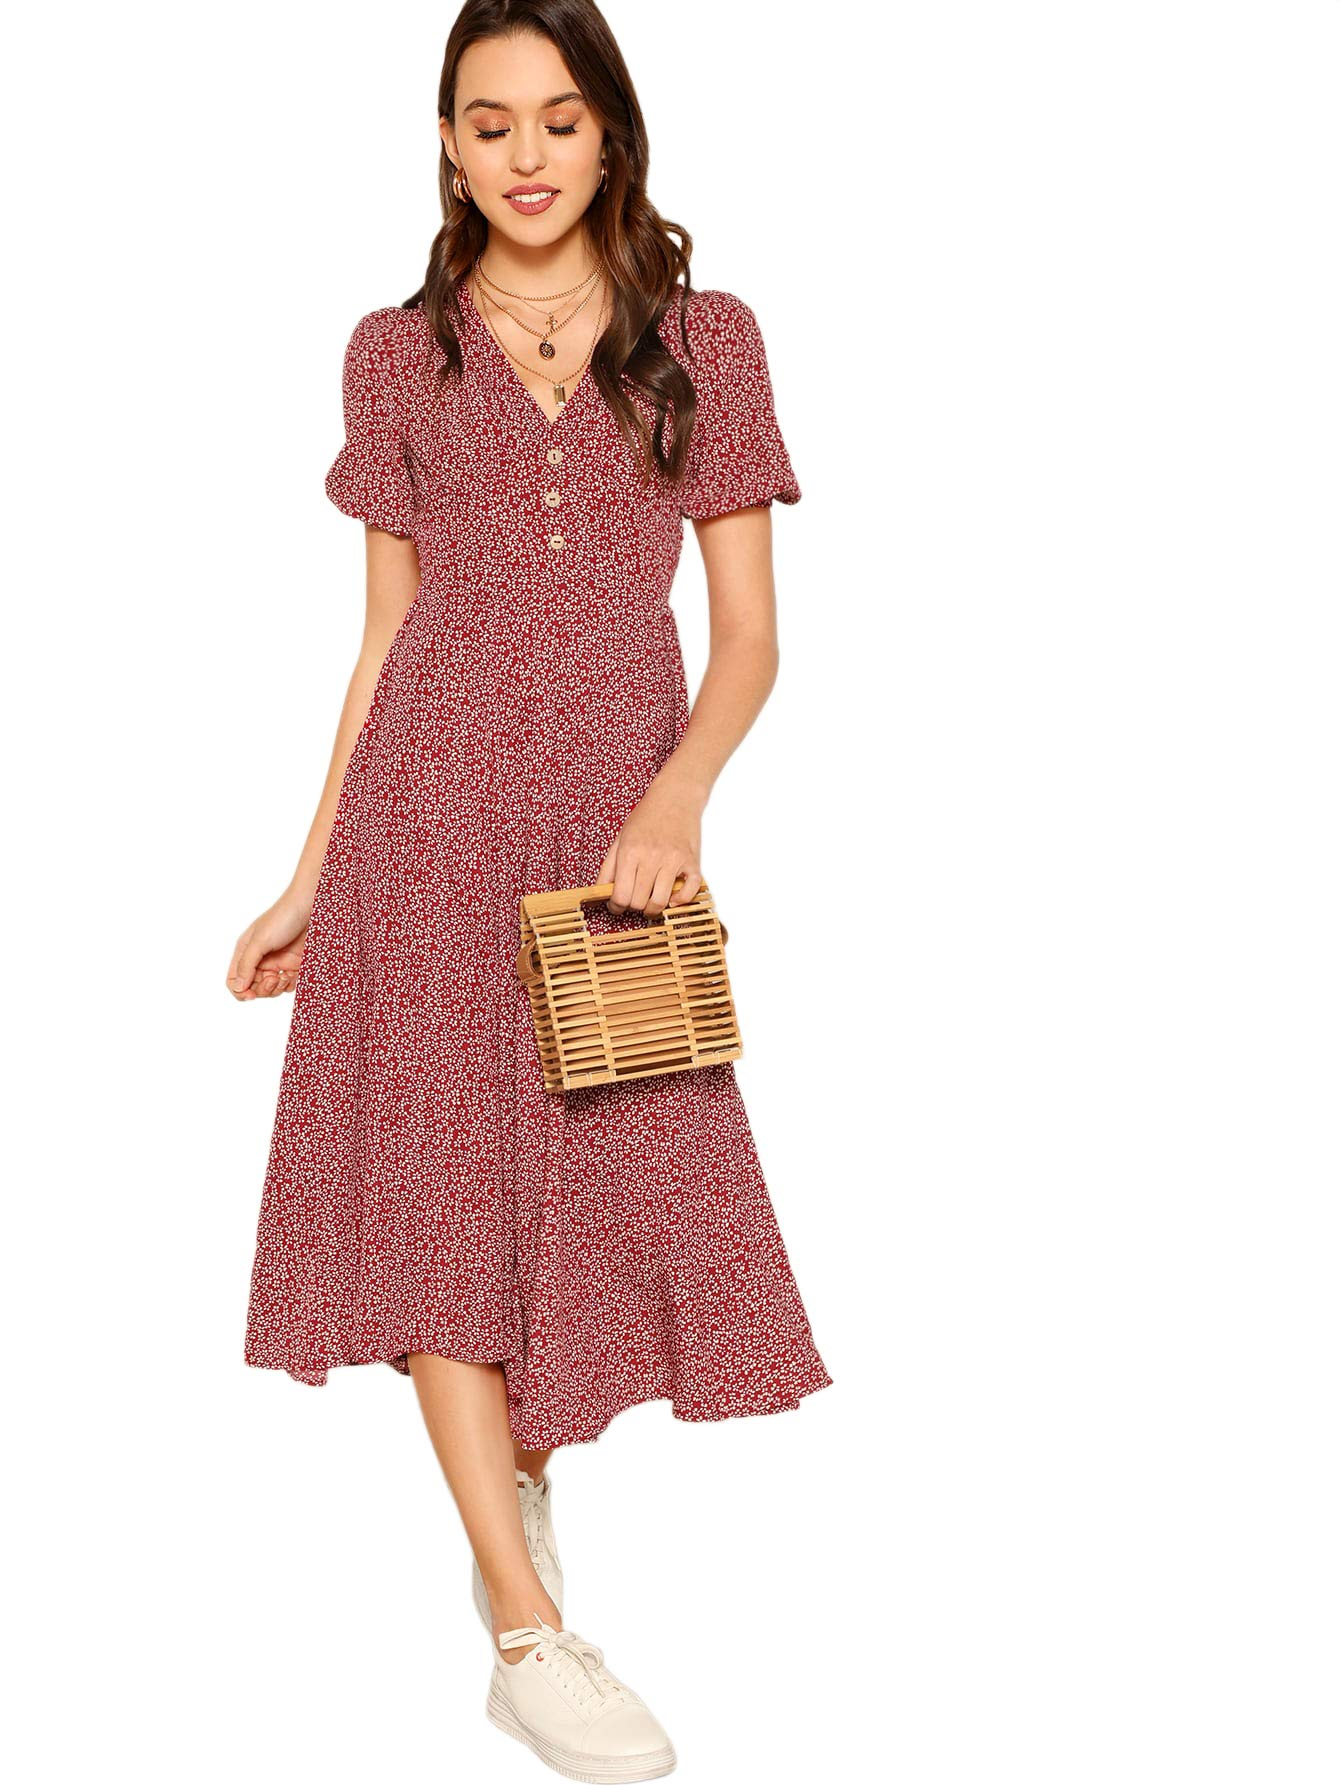 Floerns Women's Button Front Allover Floral Print V-Neck Midi Dress Red M